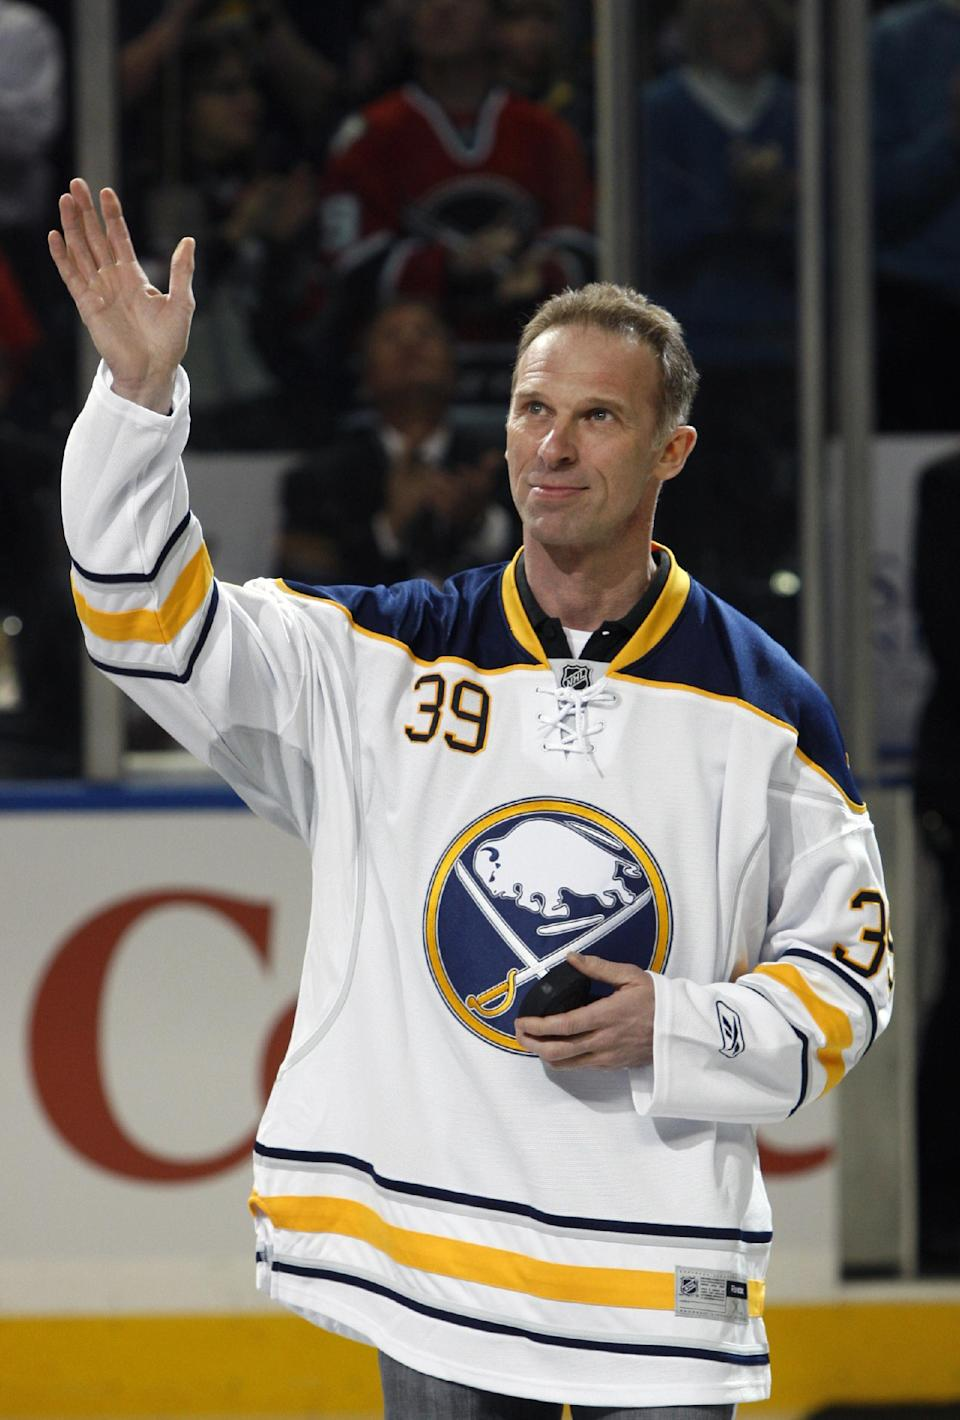 FILE - In this March 19, 2011 file photo, Buffalo Sabres former goalie Dominik Hasek waves to the fans during a pre-game ceremony before an NHL hockey game against the Atlanta Thrashers in Buffalo, N.Y. Hasek is expected to be part of the class of 2014 at the Hockey Hall of Fame, which will be announced Monday, June 23, 2014. (AP Photo/David Duprey, File)